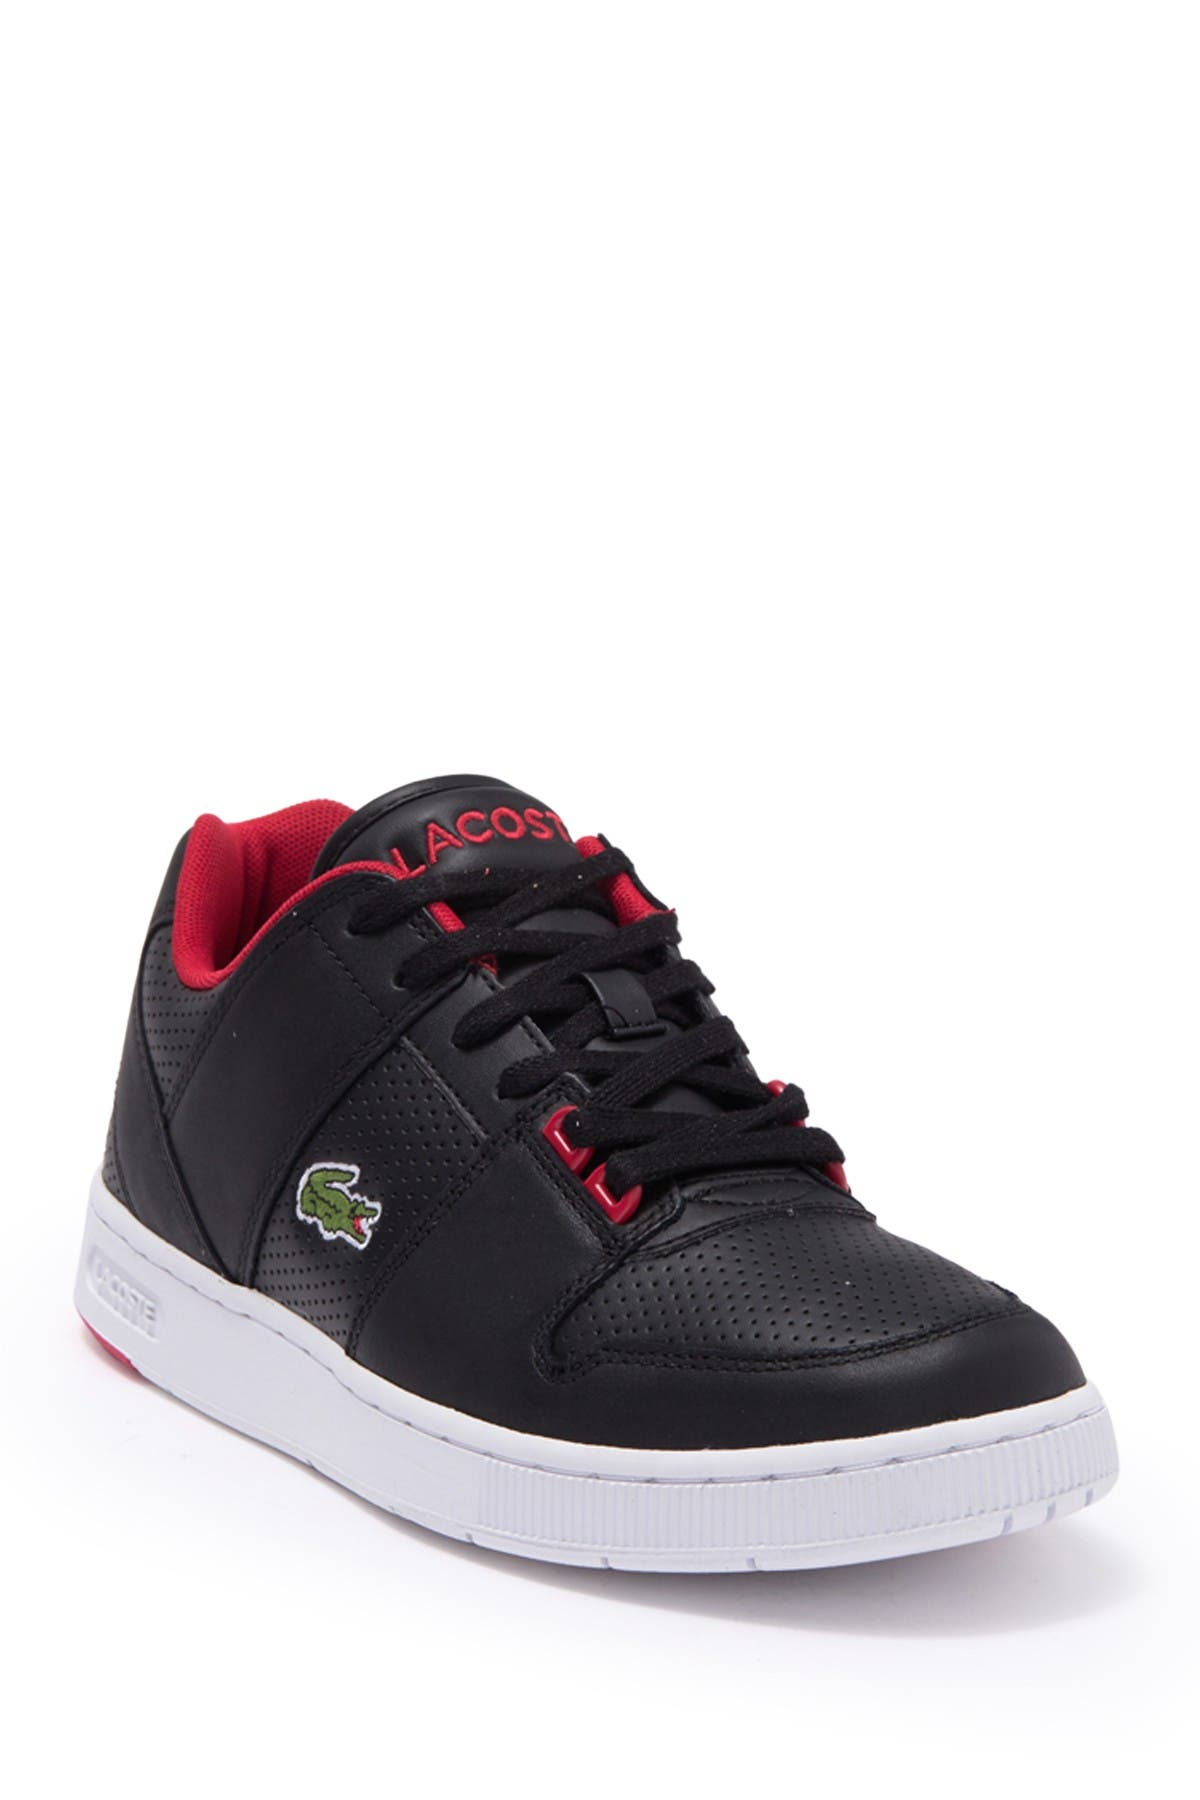 Image of Lacoste Thrill 120 Sneaker